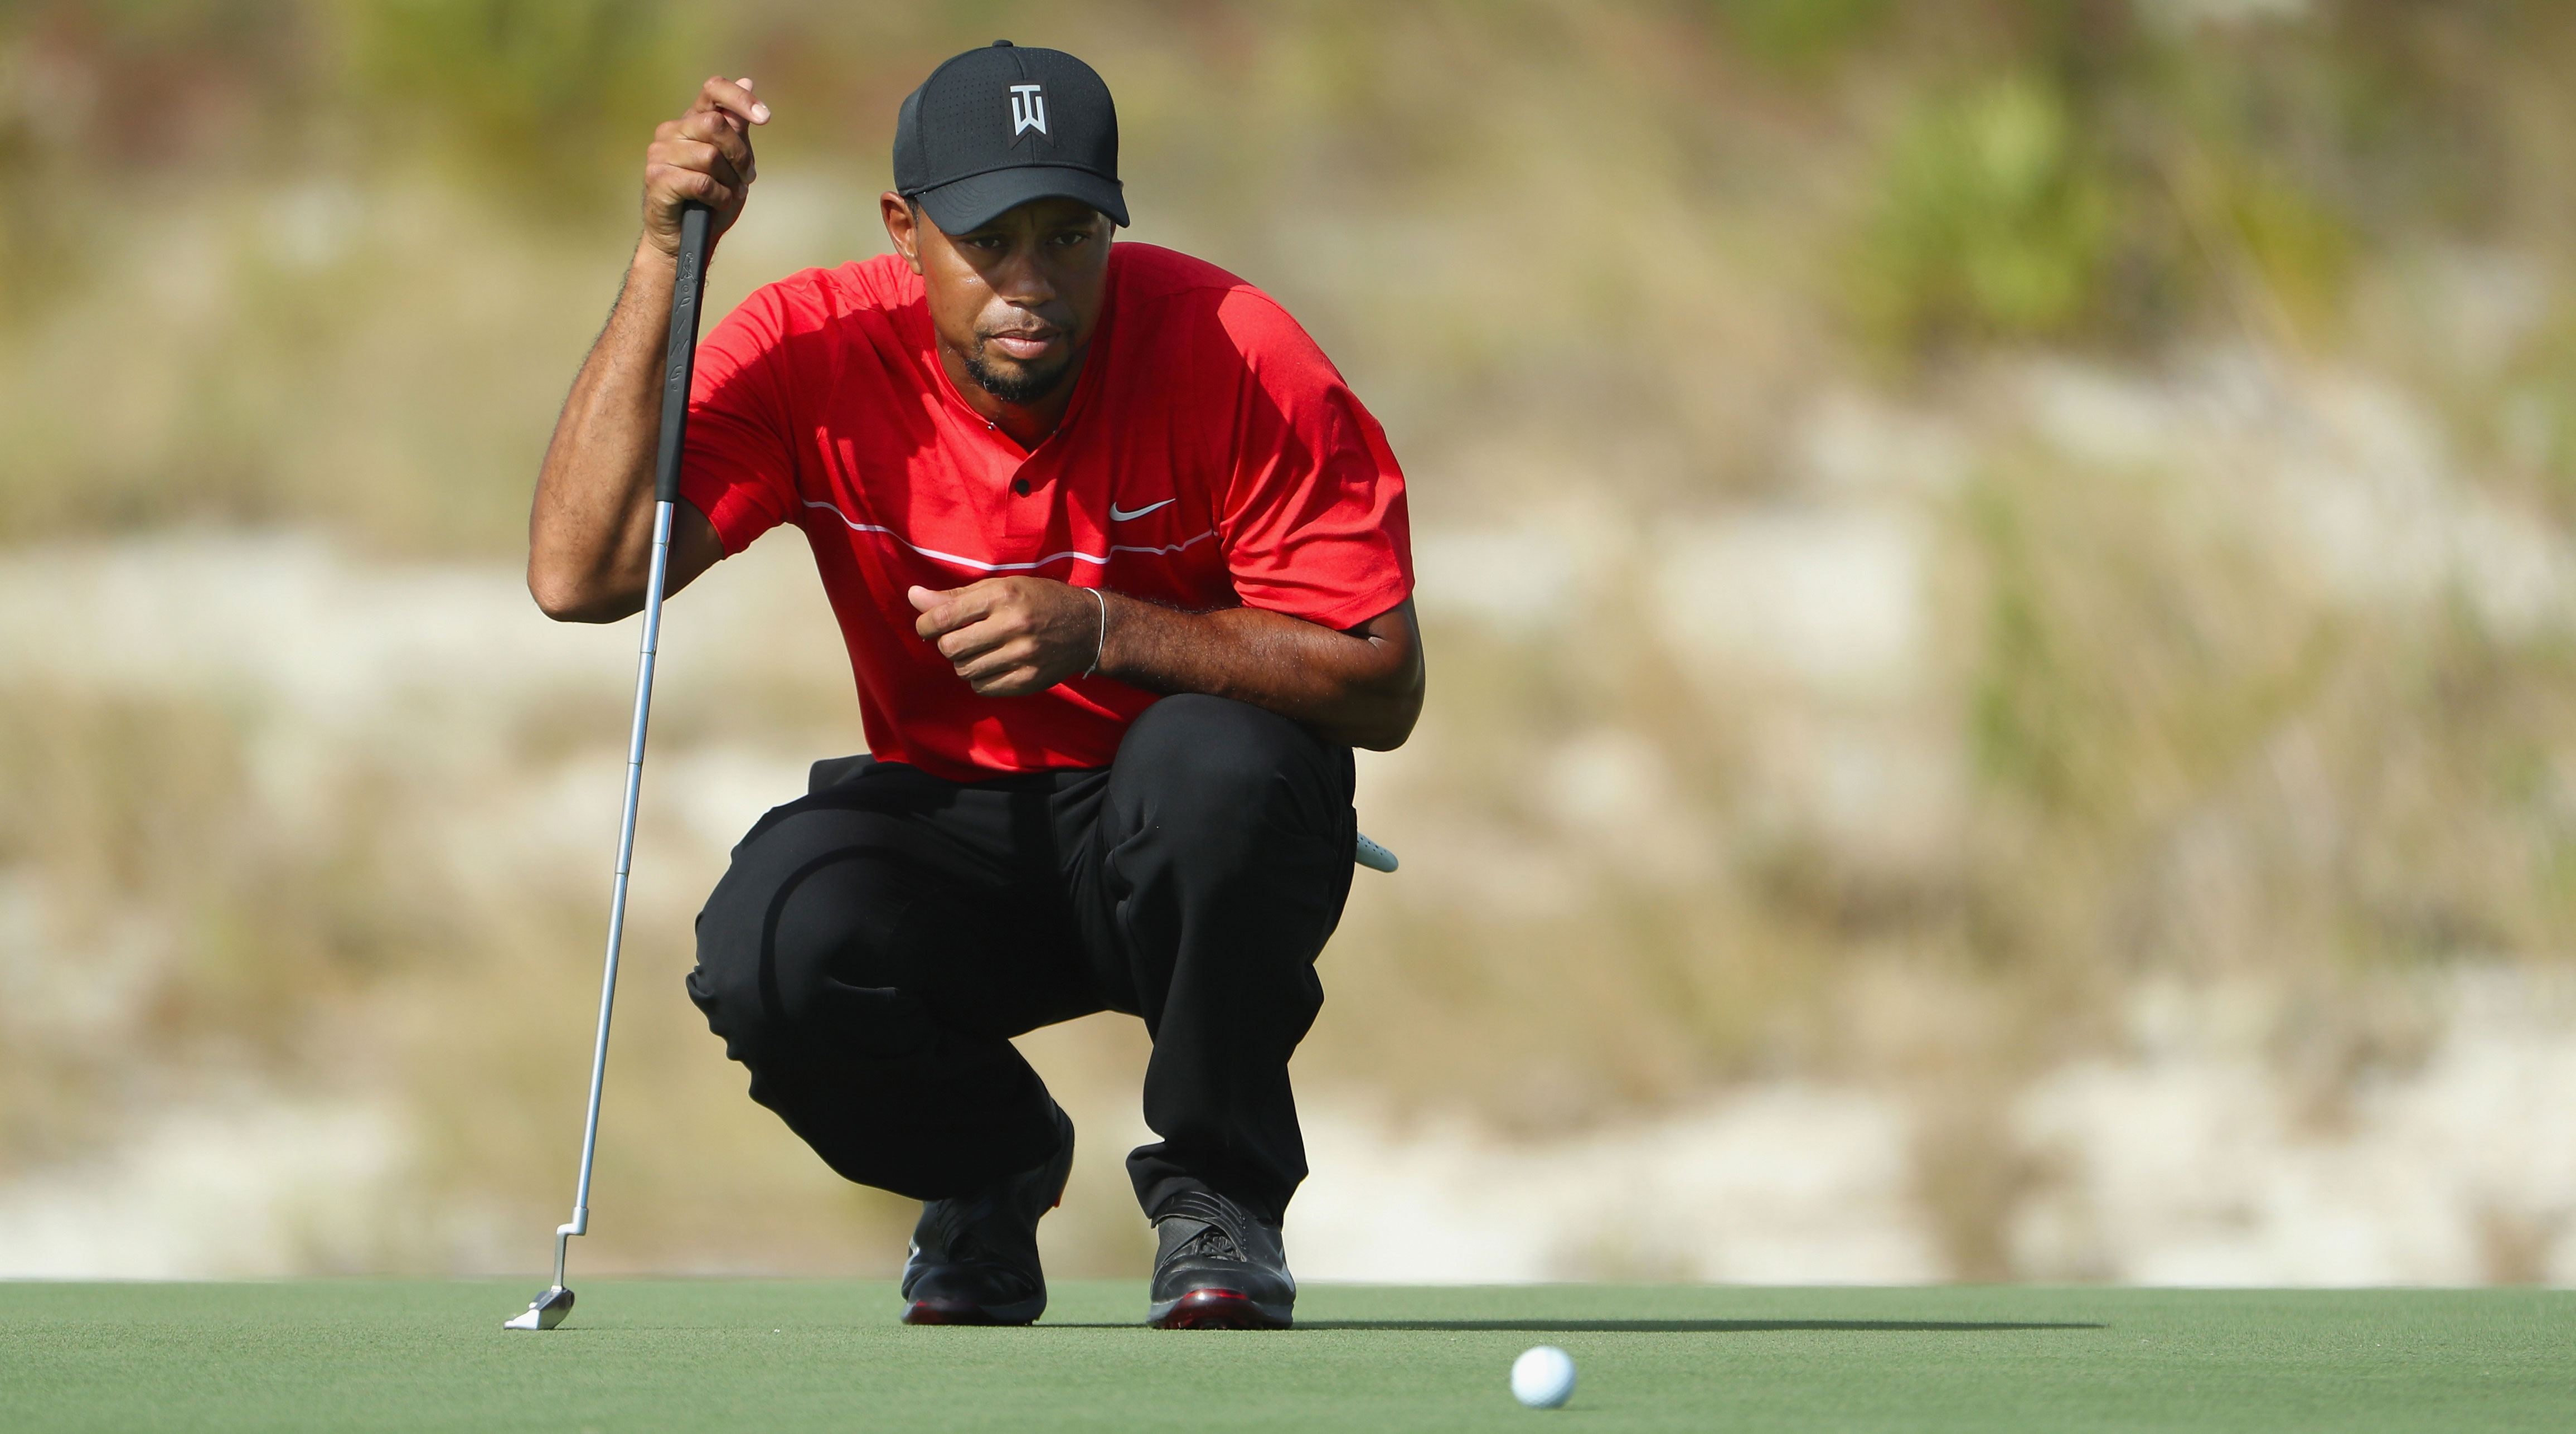 Woods will make his long-awaited return to competitive golf at the Hero World Challenge